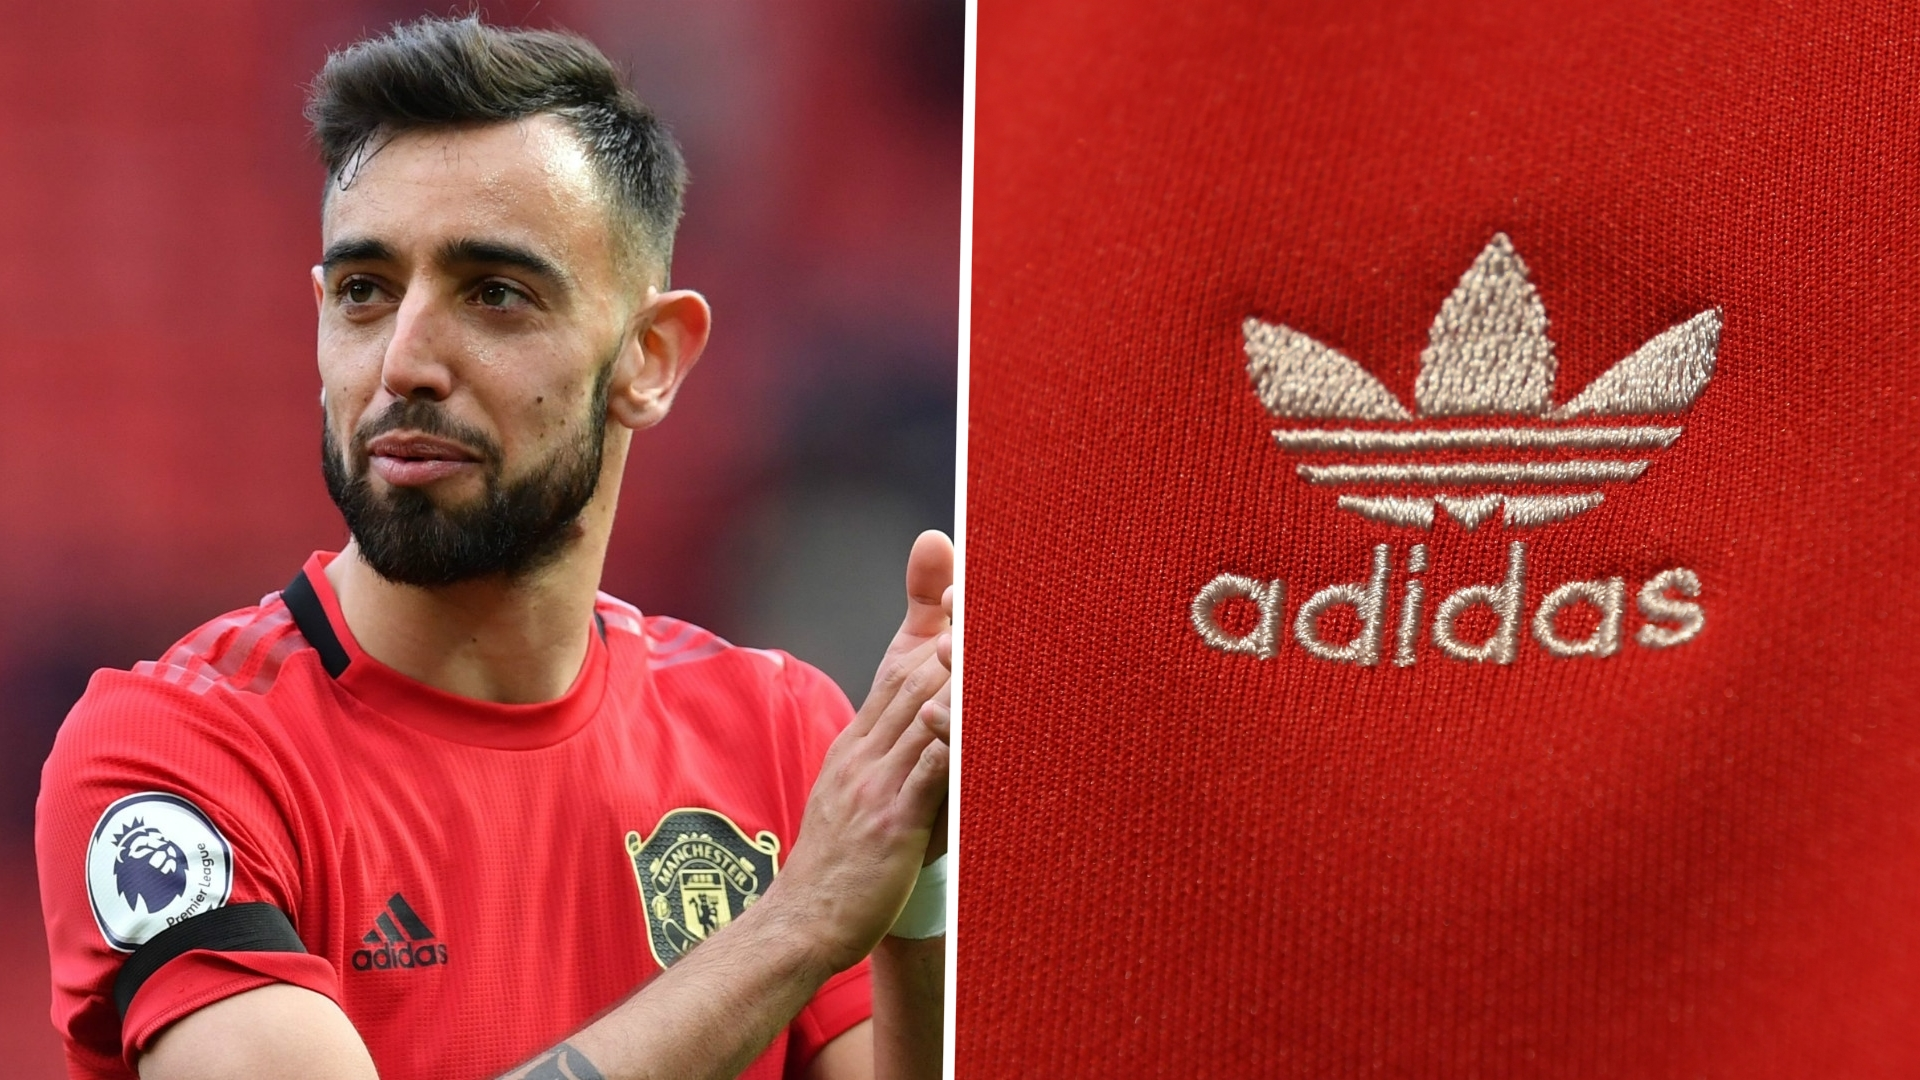 manchester united s 2020 21 kit new home and away jersey styles and release dates sporting news canada manchester united s 2020 21 kit new